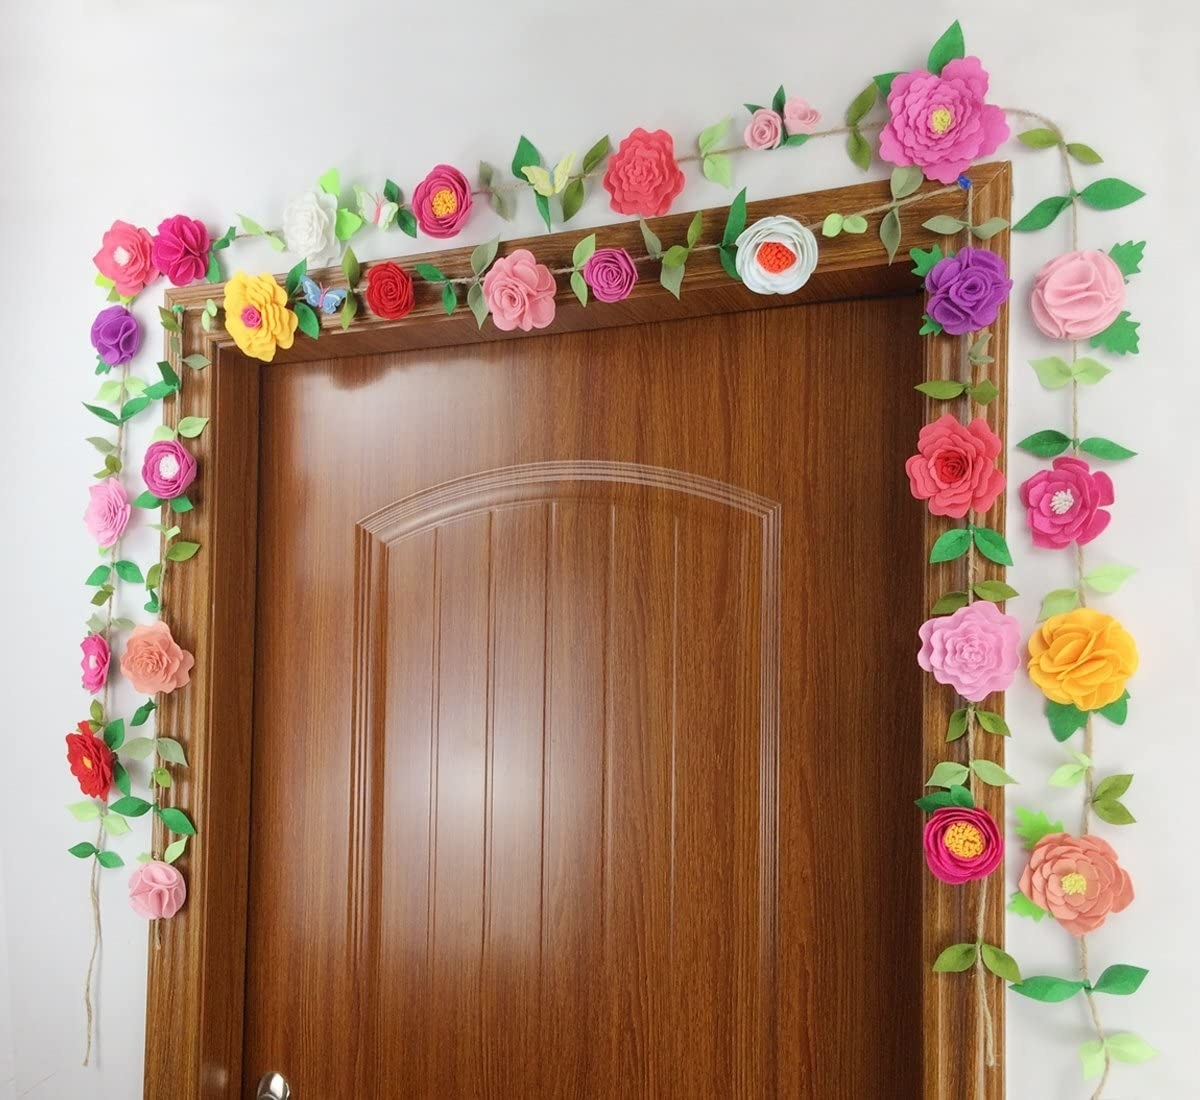 A floral garland made of twine with felted flowers of varying colors and shapes and felted leaves. They are hanging over a doorway.